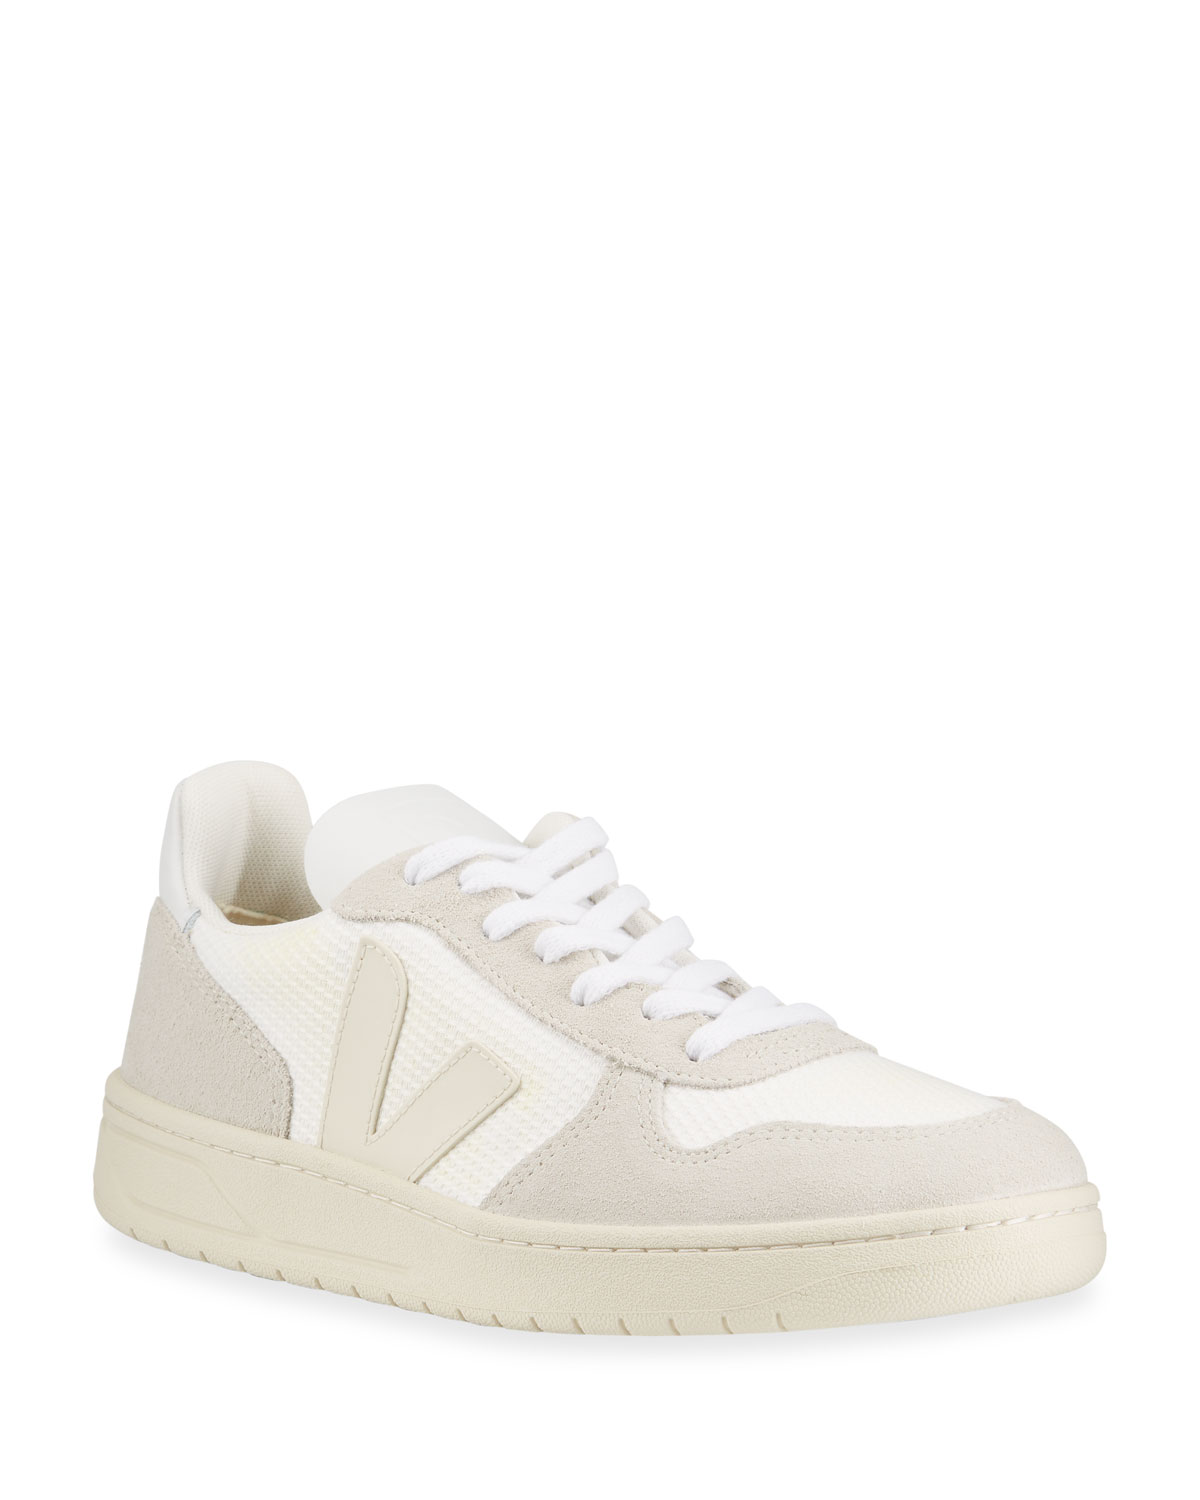 Veja V-10 MIXED LEATHER LOW-TOP COURT SNEAKERS